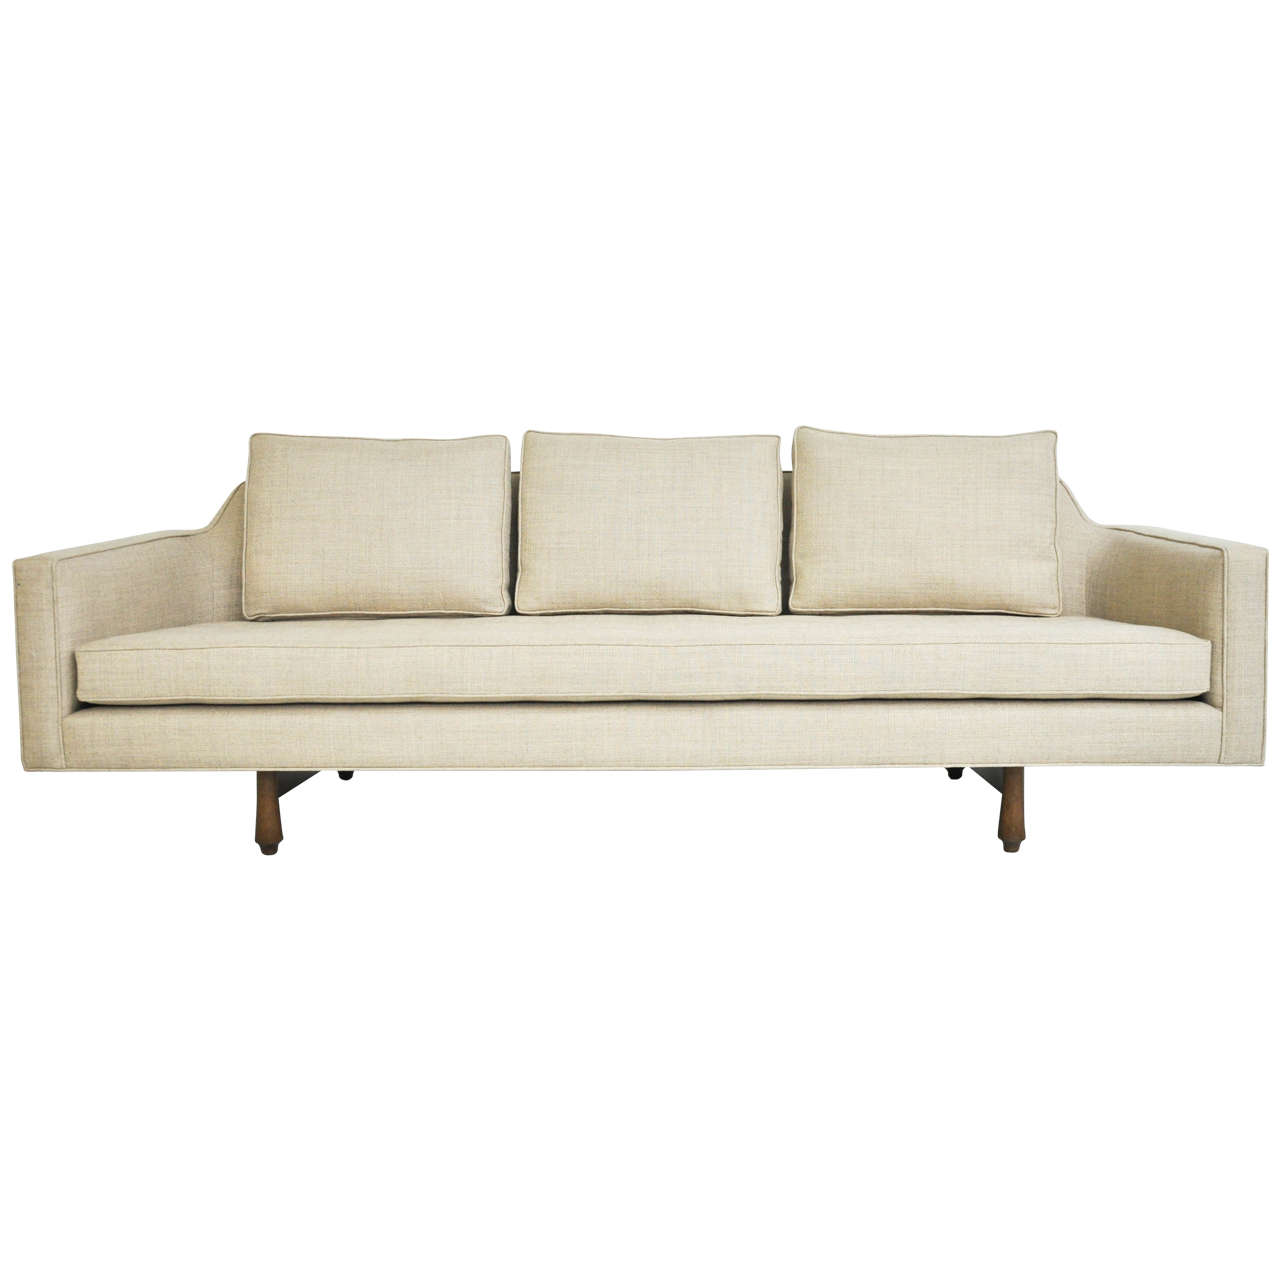 Dunbar Curved Back Sofa by Edward Wormley